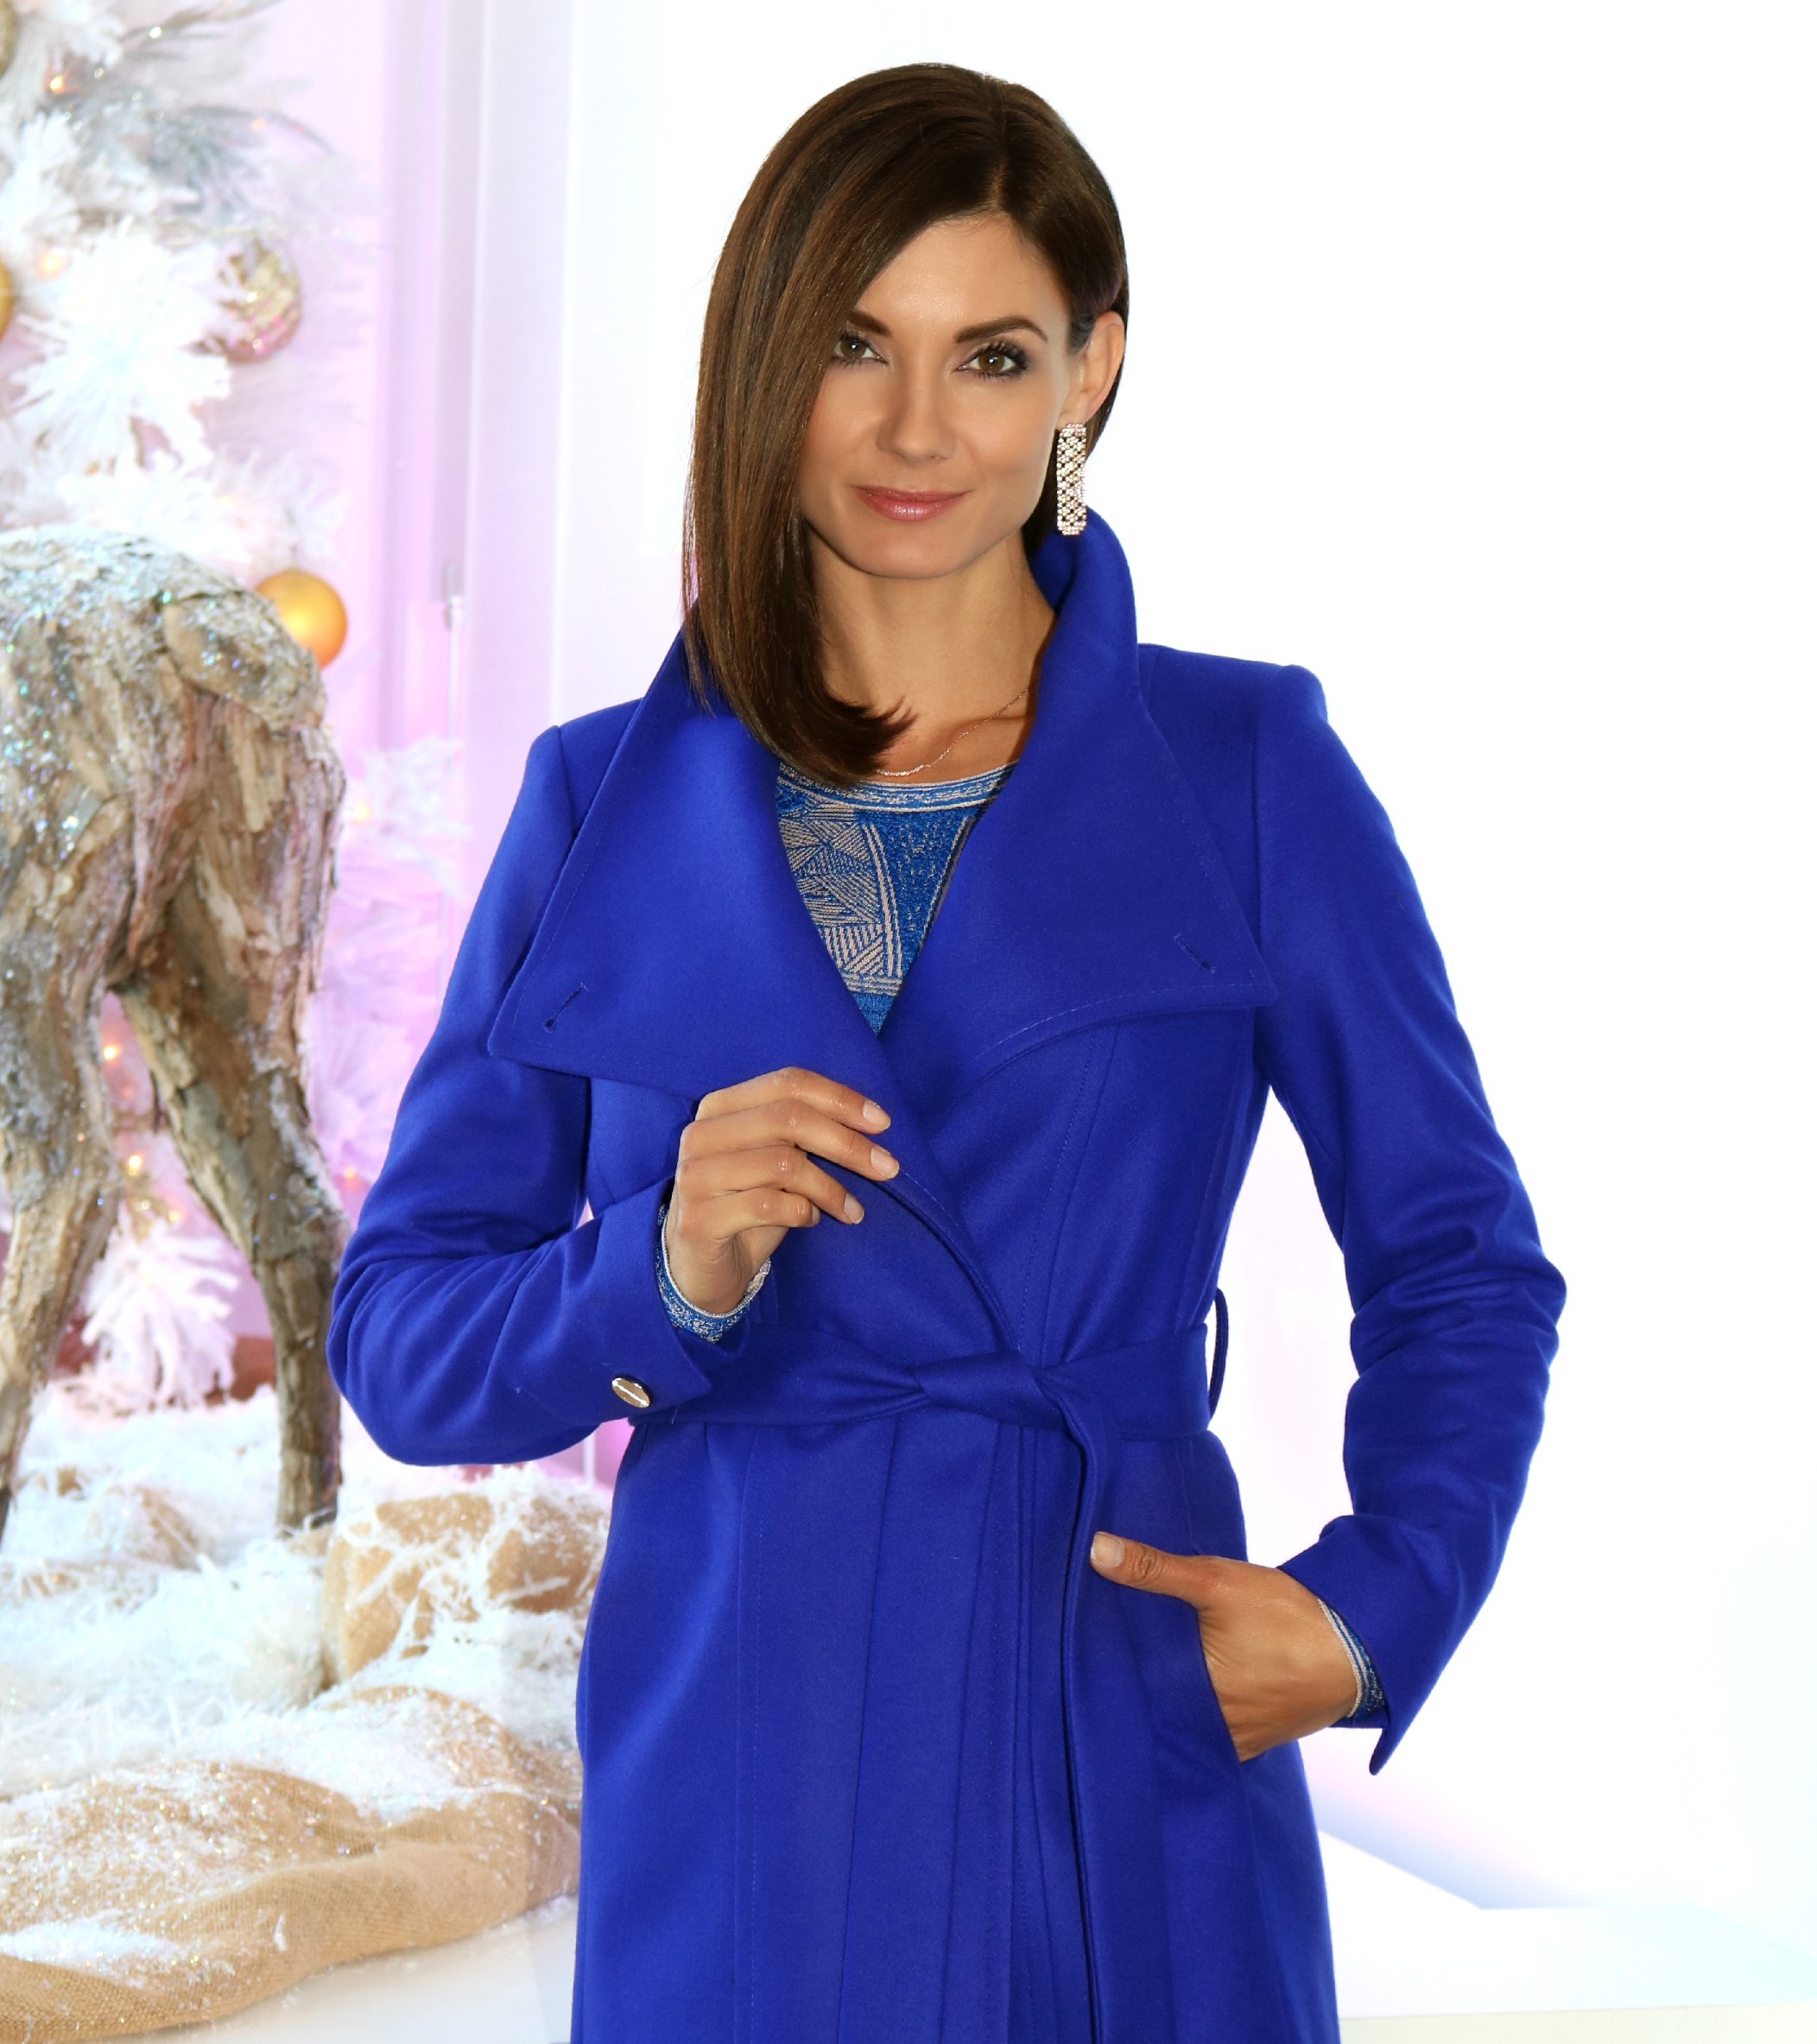 Ted Baker Lorili Long Wool Wrap Coat in Blue, Available In Store Only - Hurry! It's on sale!